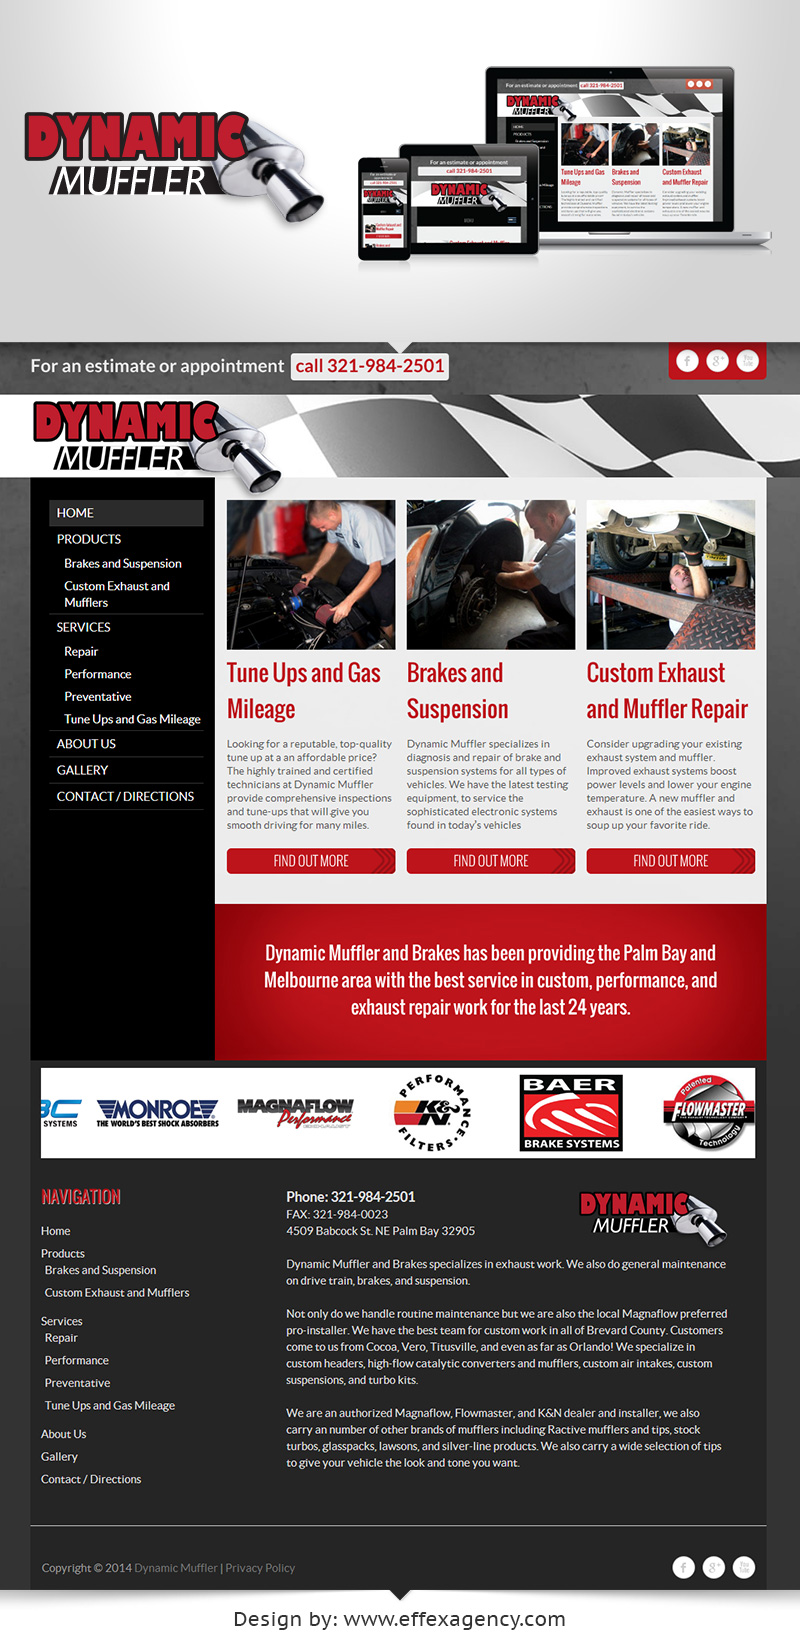 Responsive website for automotive mechanic shop serving Palm Bay and Melbourne Florida